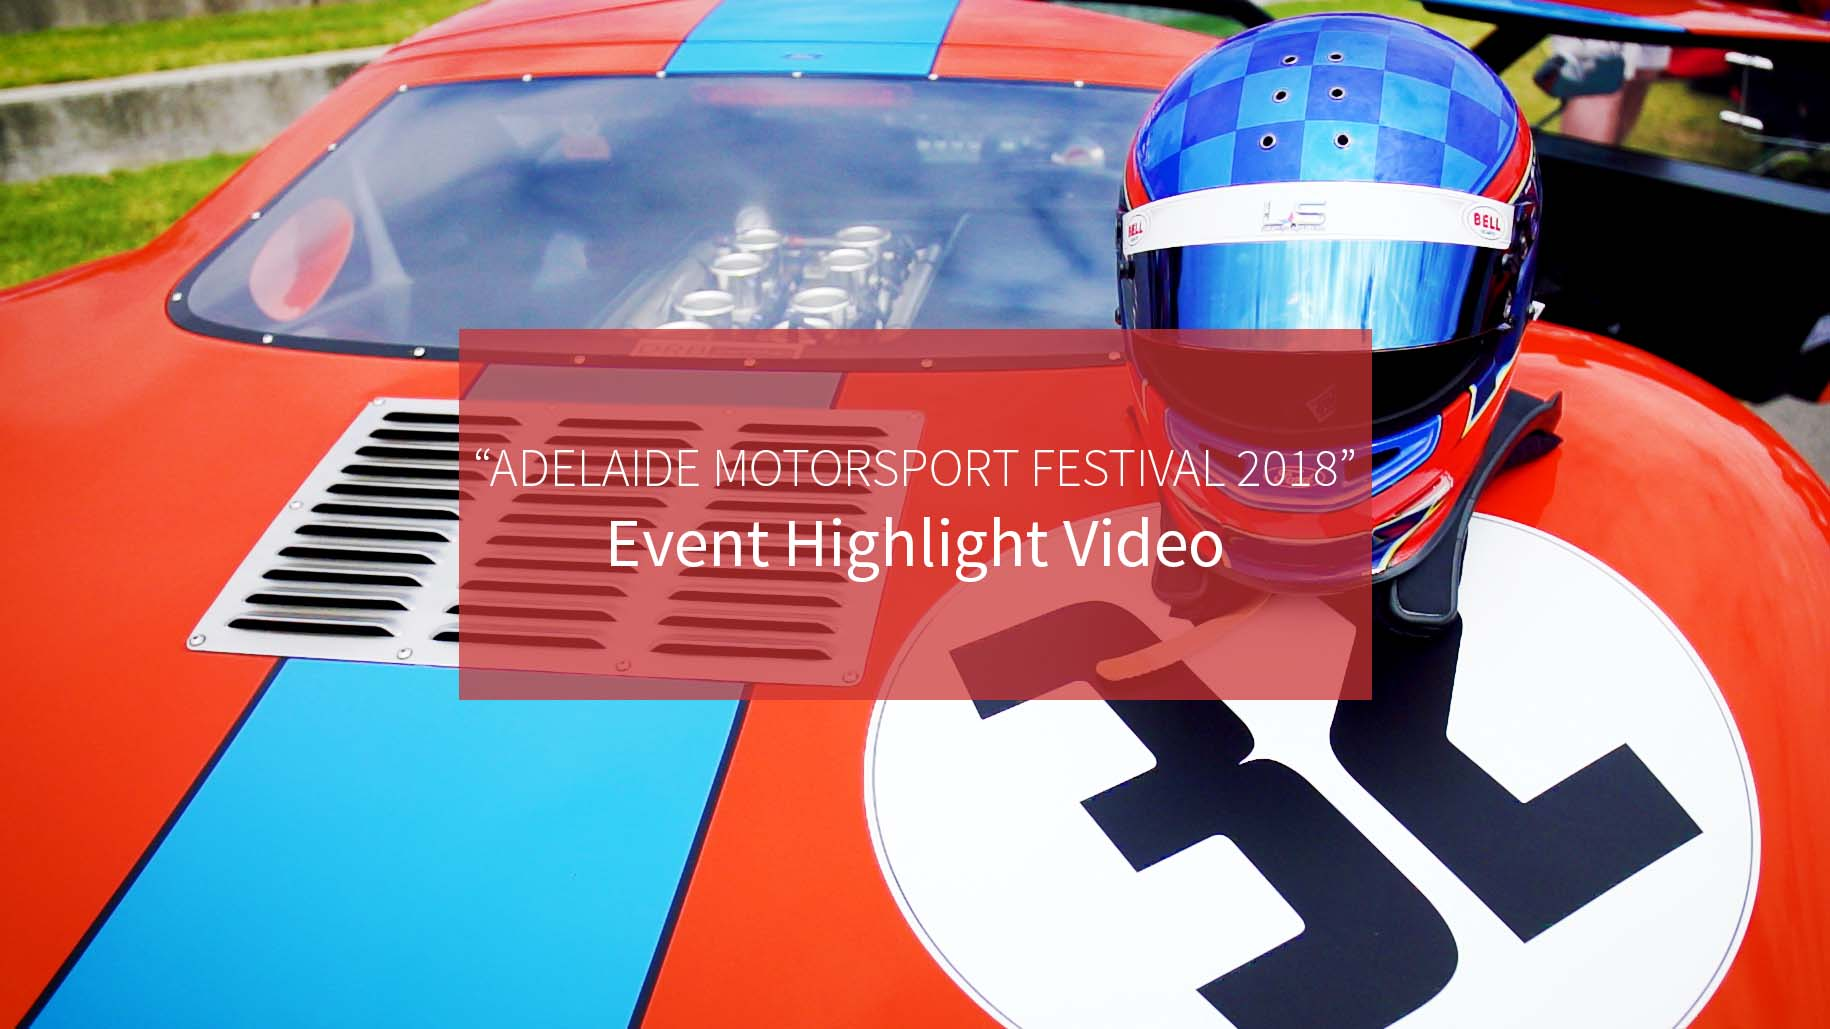 Adelaide Motosport Festival 2018 Event highlight video image